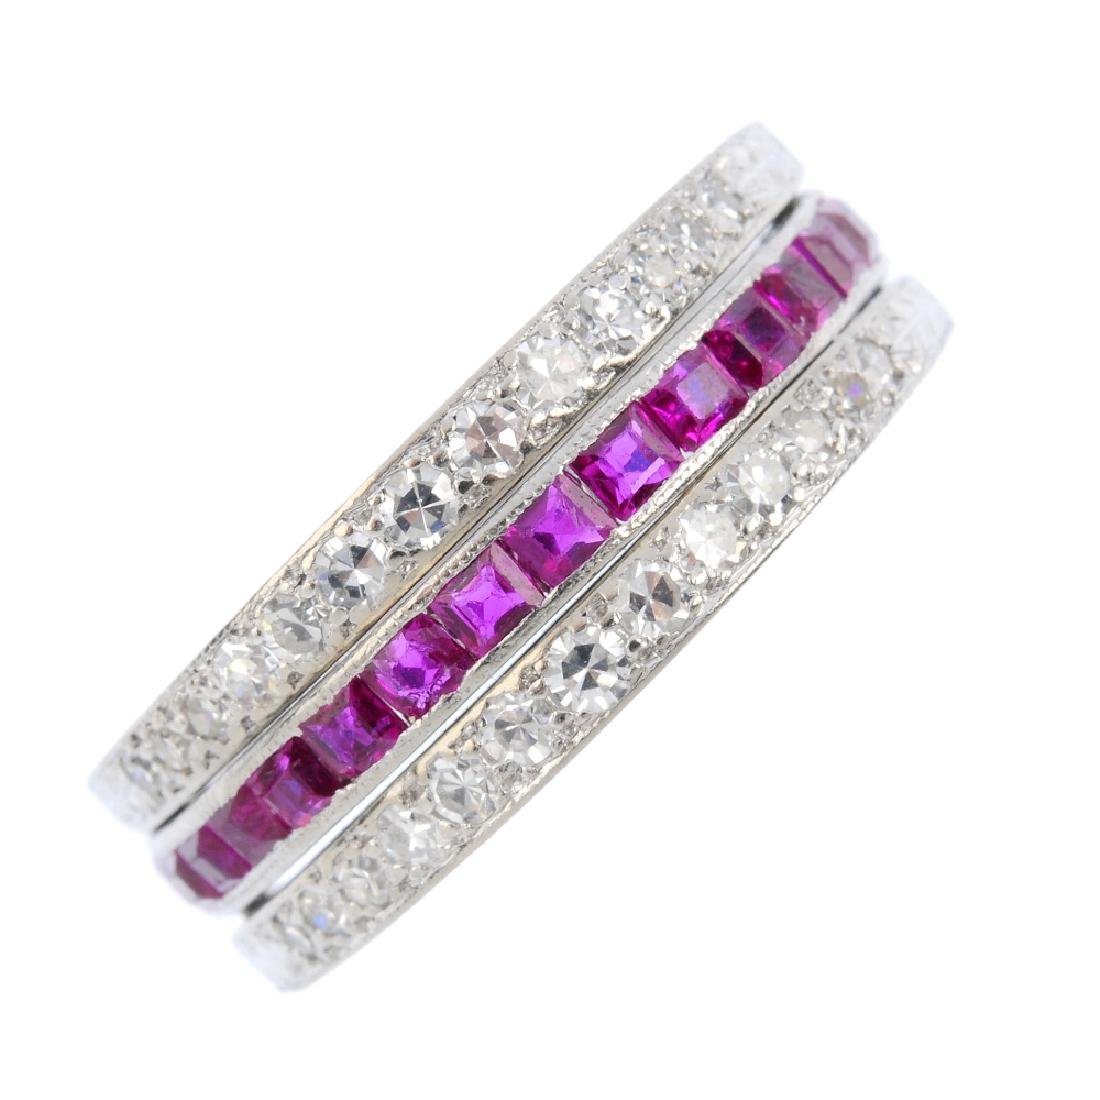 A ruby, sapphire and diamond eternity flip ring. The